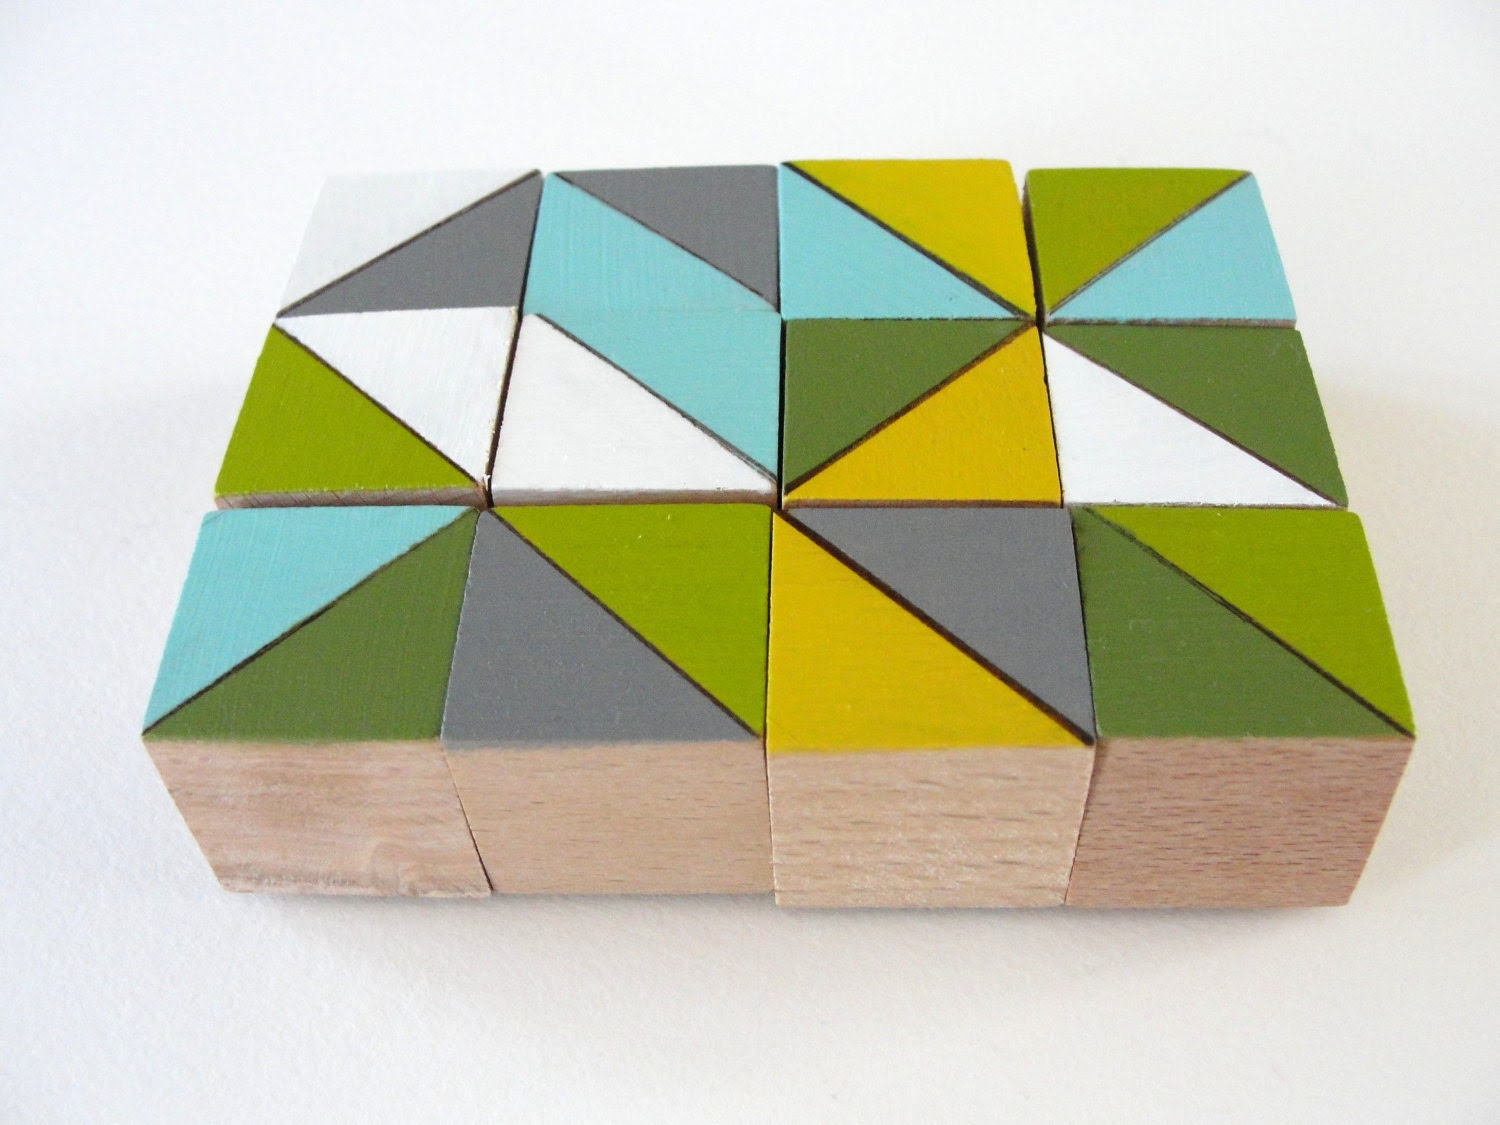 "Art Block Magnets - 12 Hand Painted Geometric Wood Blocks 1x1x1"" in Midwest Modern Set (Gray, Green, & Yellow)"